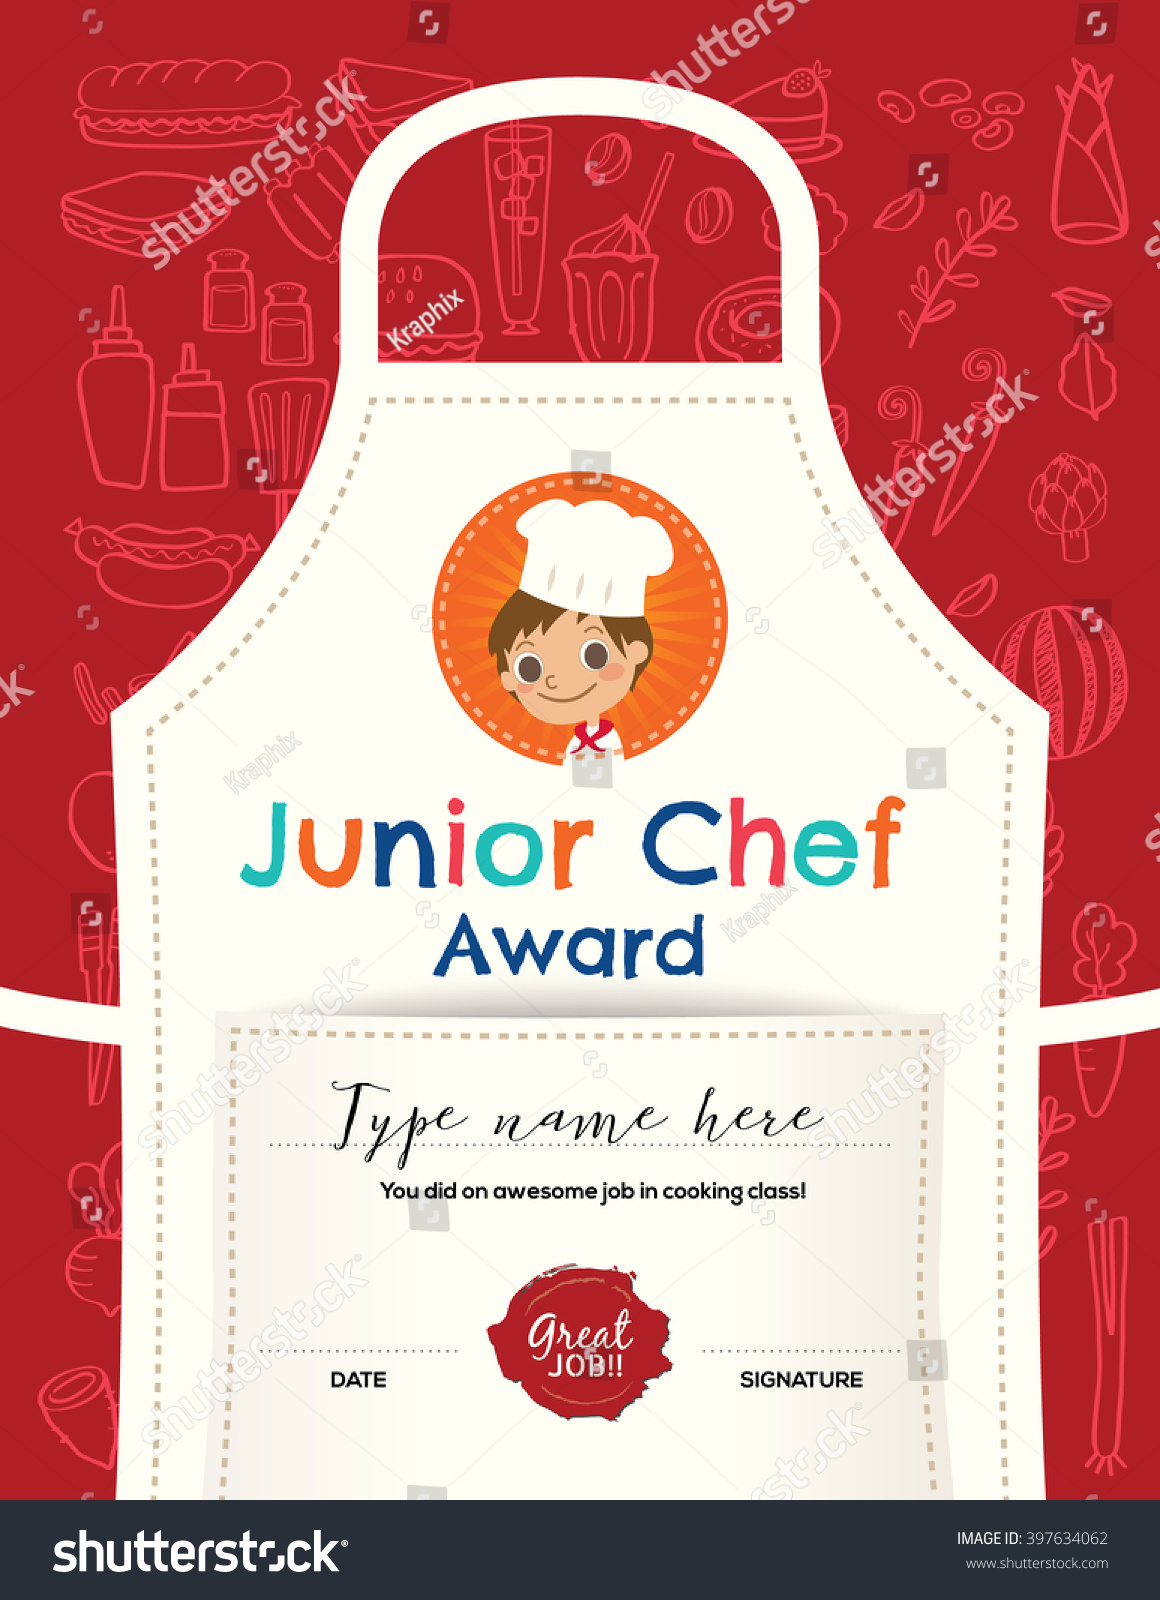 Kids cooking class certificate design template stock vector kids cooking class certificate design template with junior chef cartoon illustration on kitchen apron background yelopaper